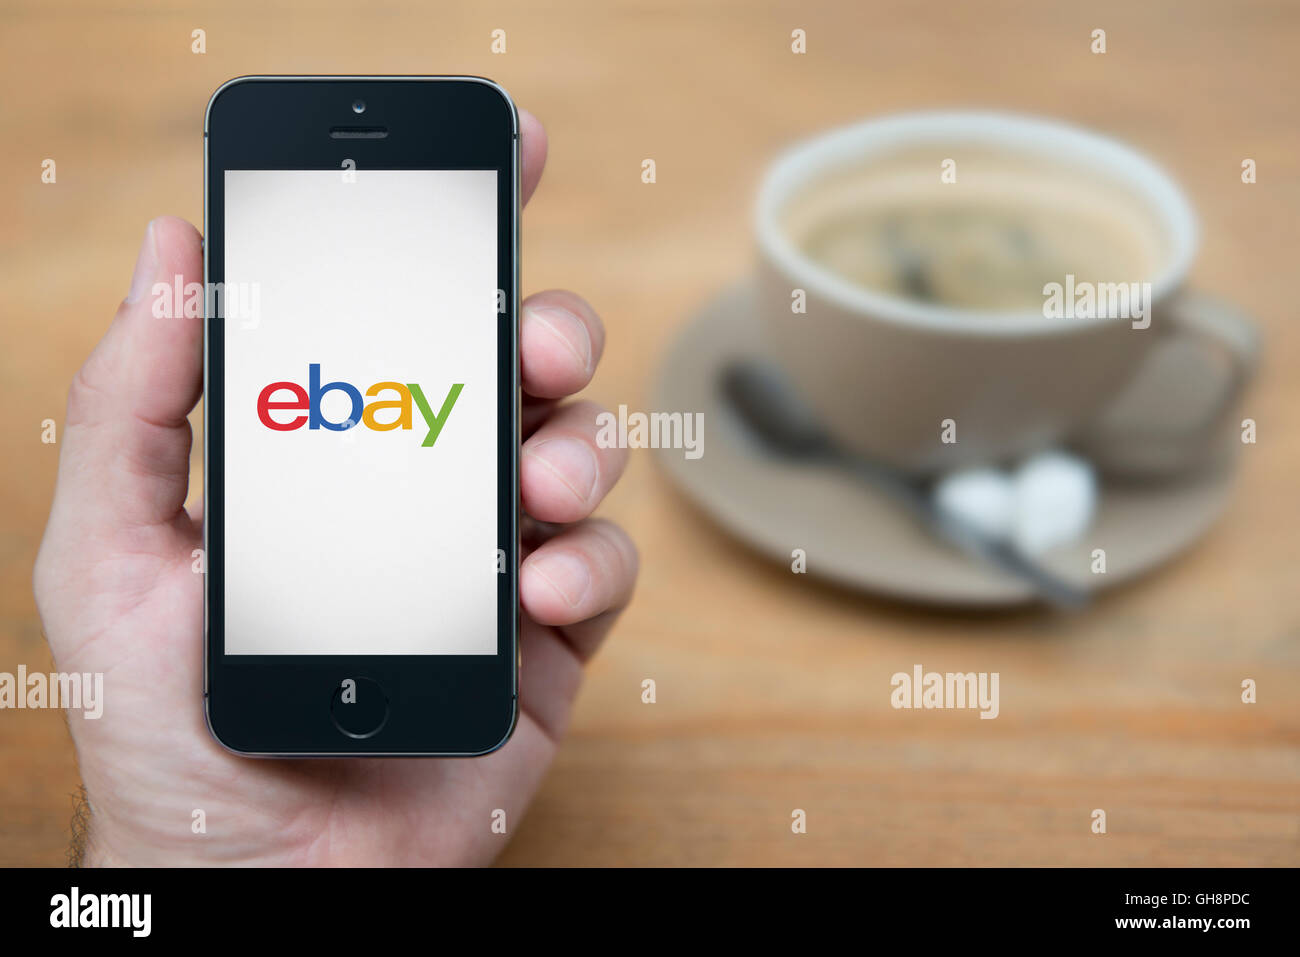 A man looks at his iPhone which displays the Ebay logo, while sat with a cup of coffee (Editorial use only). - Stock Image